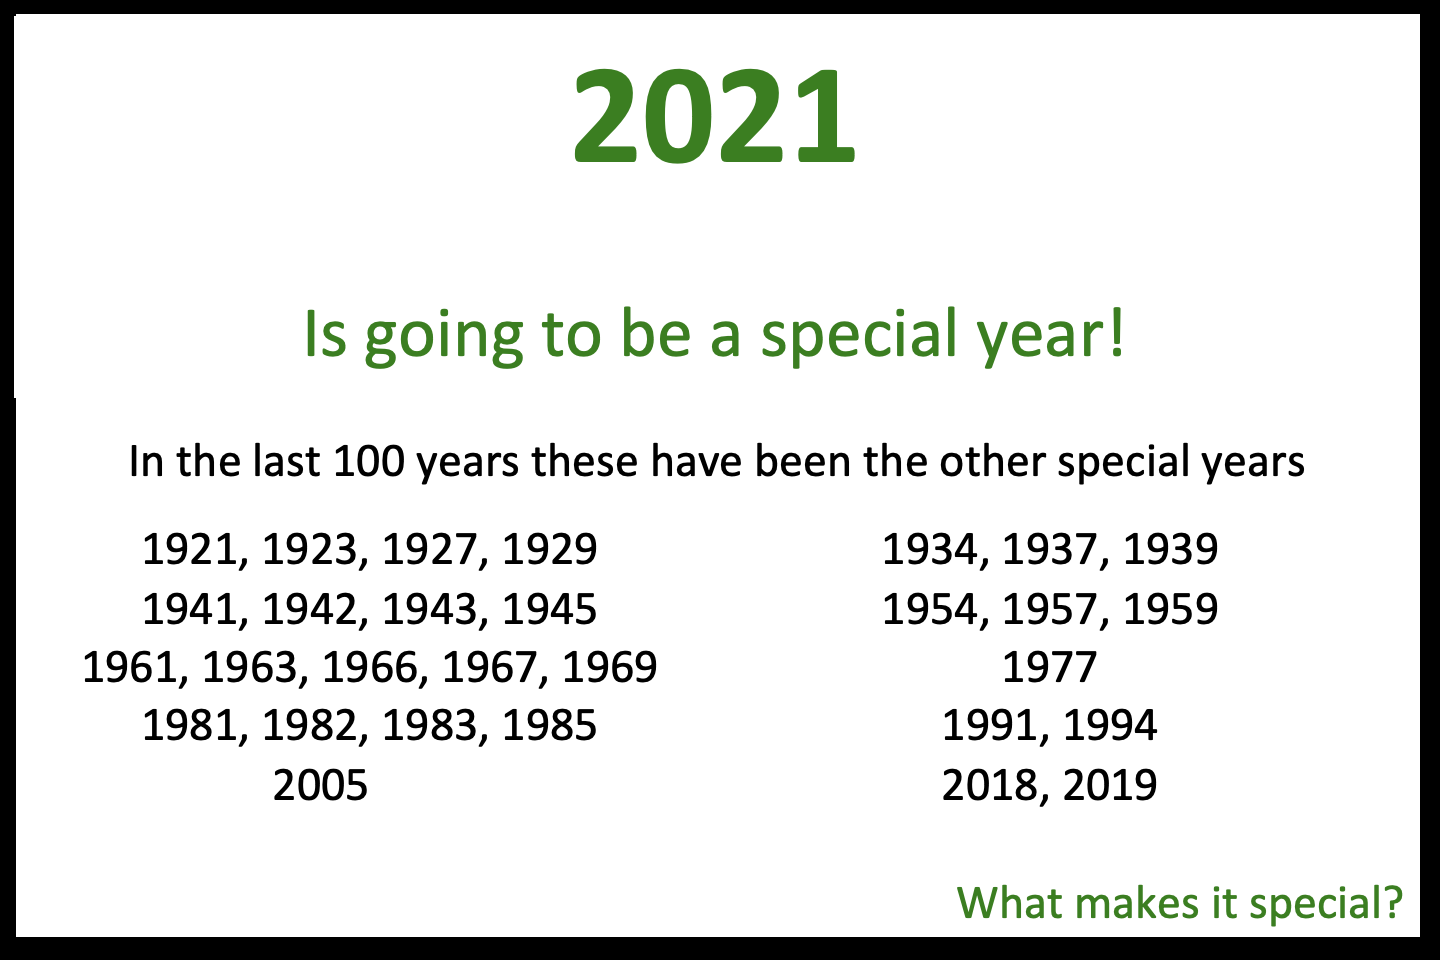 2021 is a Special Year